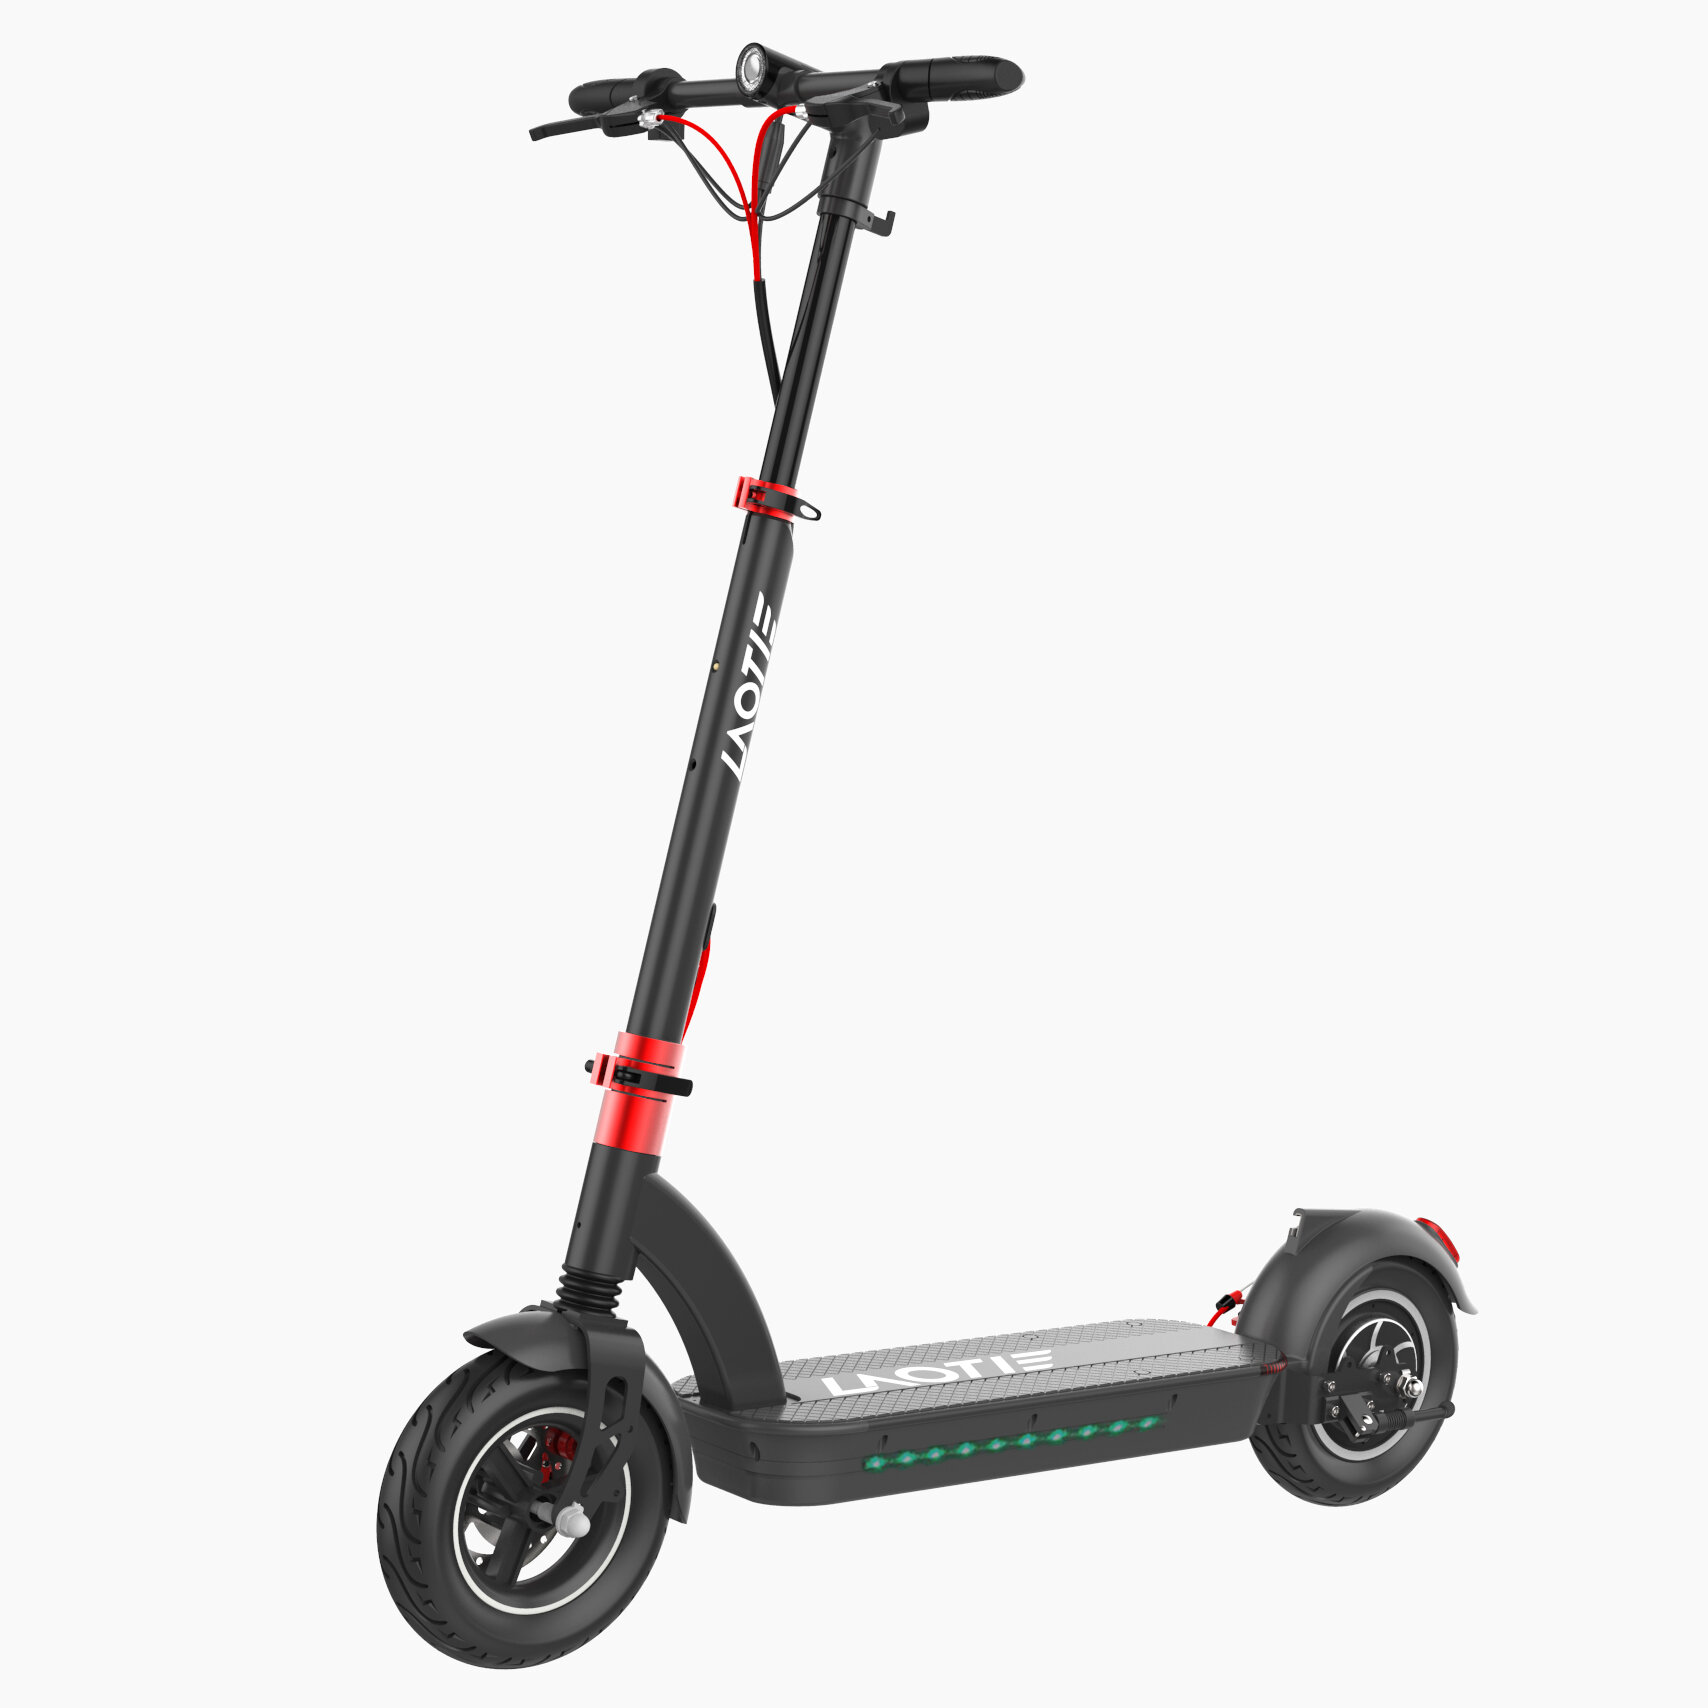 LAOTIE® H6 Pro 500W 48V 17.5Ah 10 Inches Folding Electric Scooter 40km/h Top Speed 60-70km Mileage Max Load 120kg Produced With Aerlang